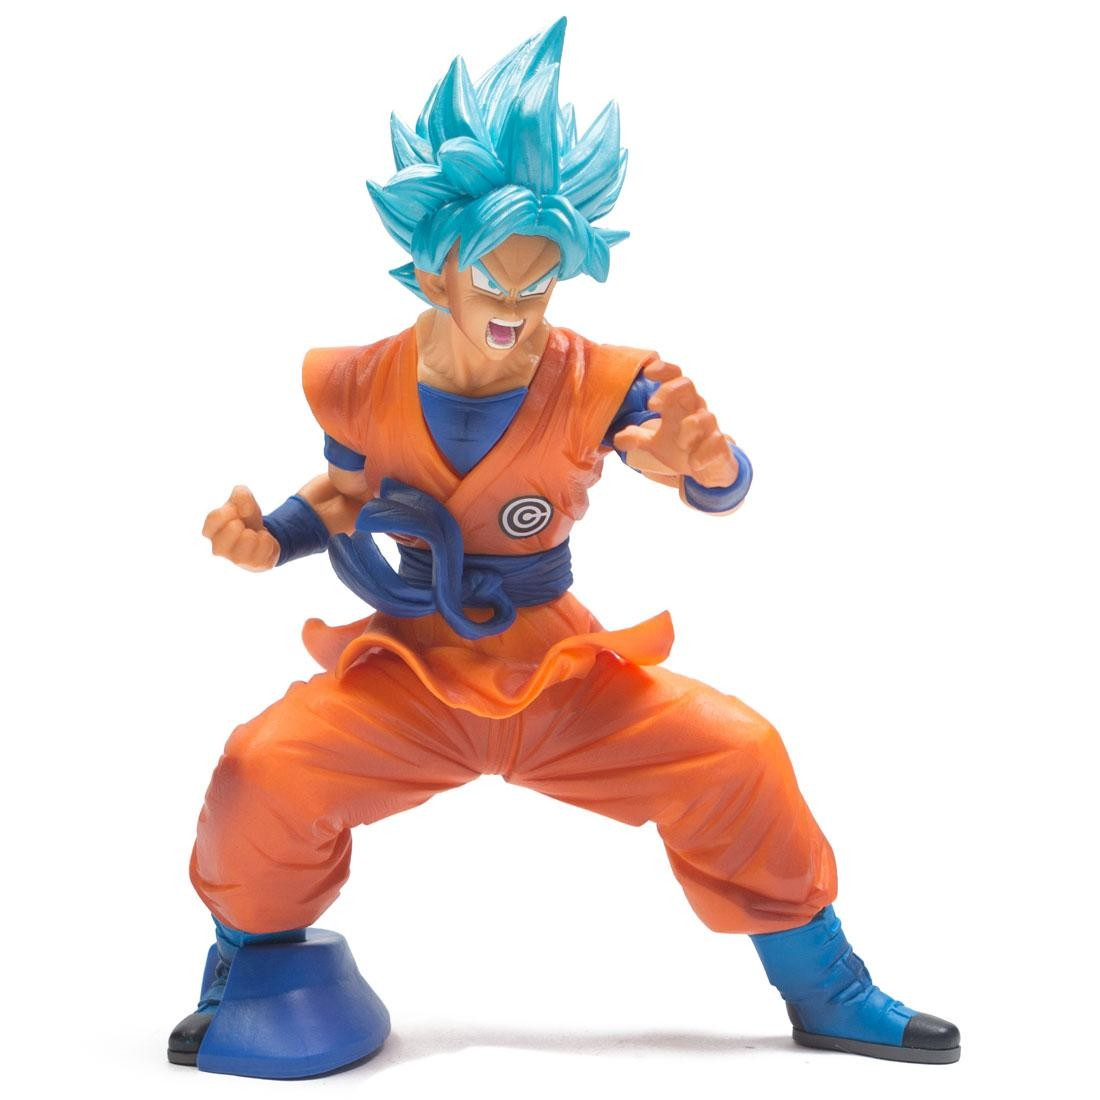 Banpresto Super Dragon Ball Heroes Transcendence Art Vol. 1 Super Saiyan Blue Goku Figure (blue)